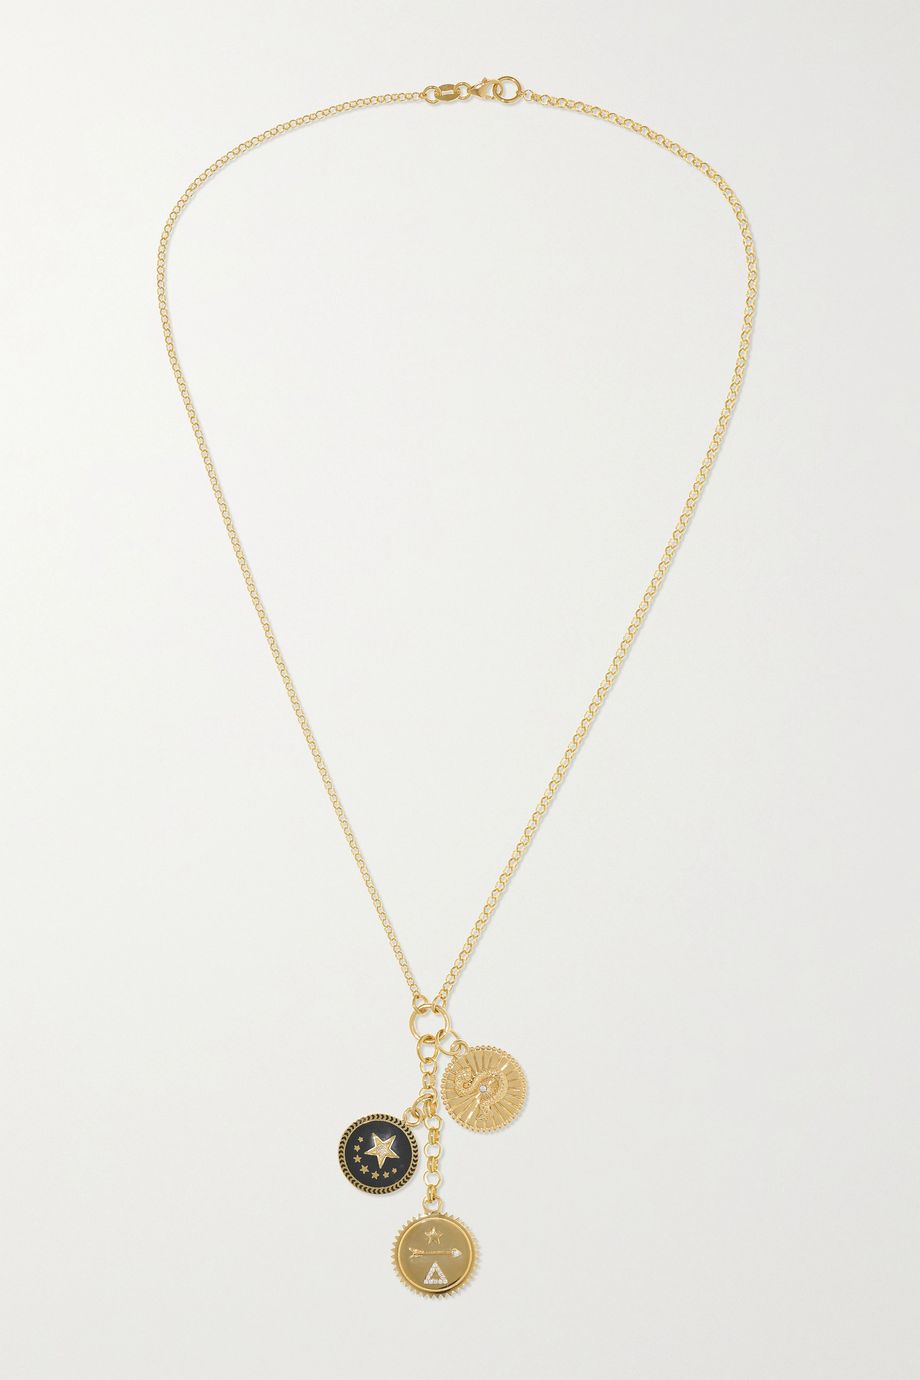 Foundrae 18-karat gold, diamond and enamel necklace